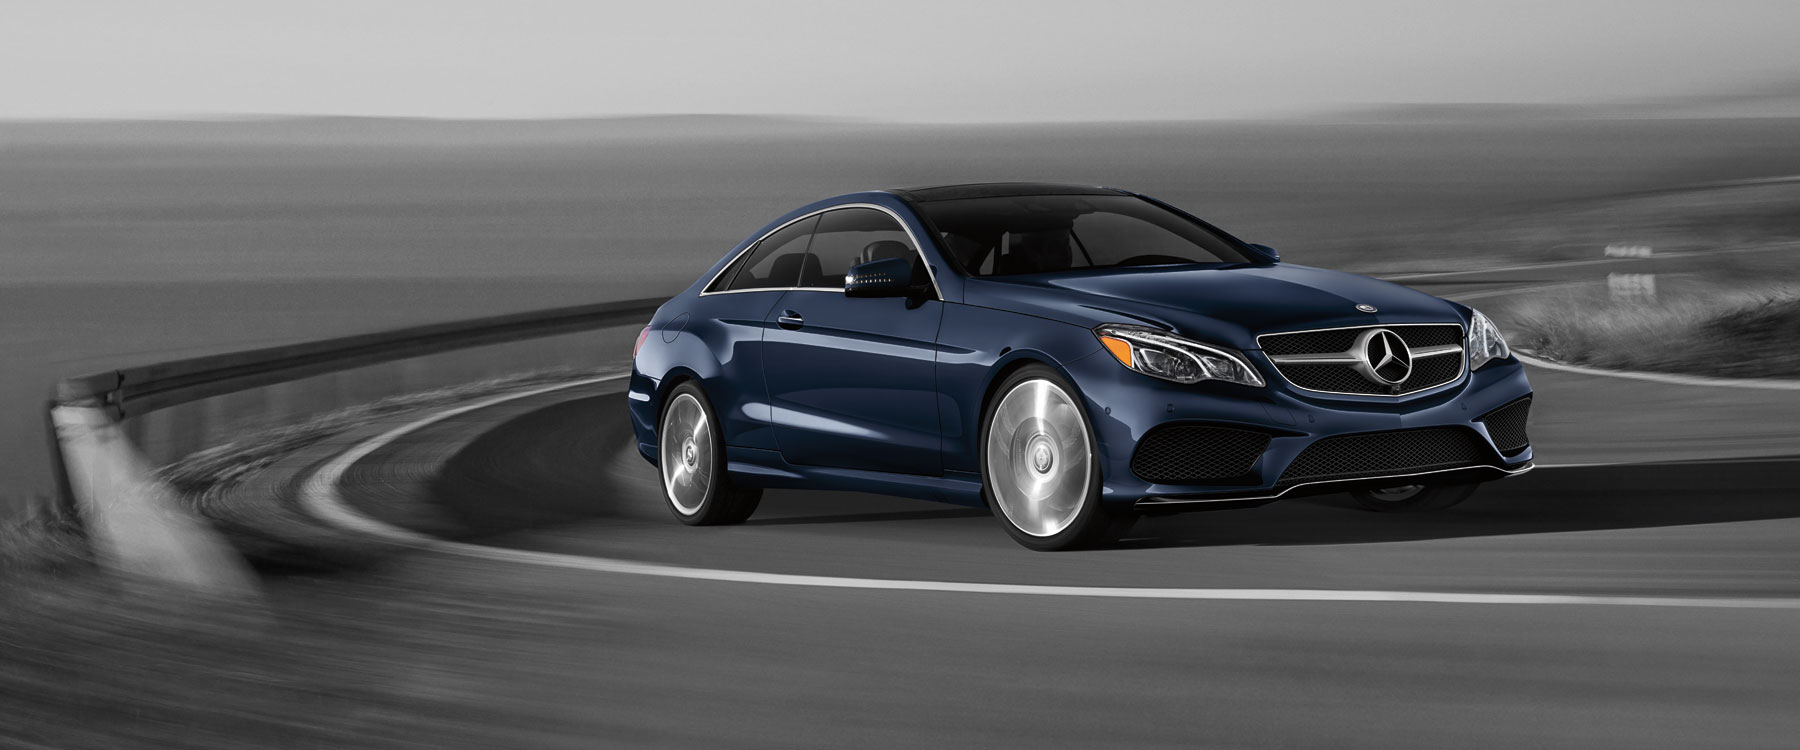 The 2017 mercedes benz e400 coupe for las vegas and henderson for Henderson mercedes benz